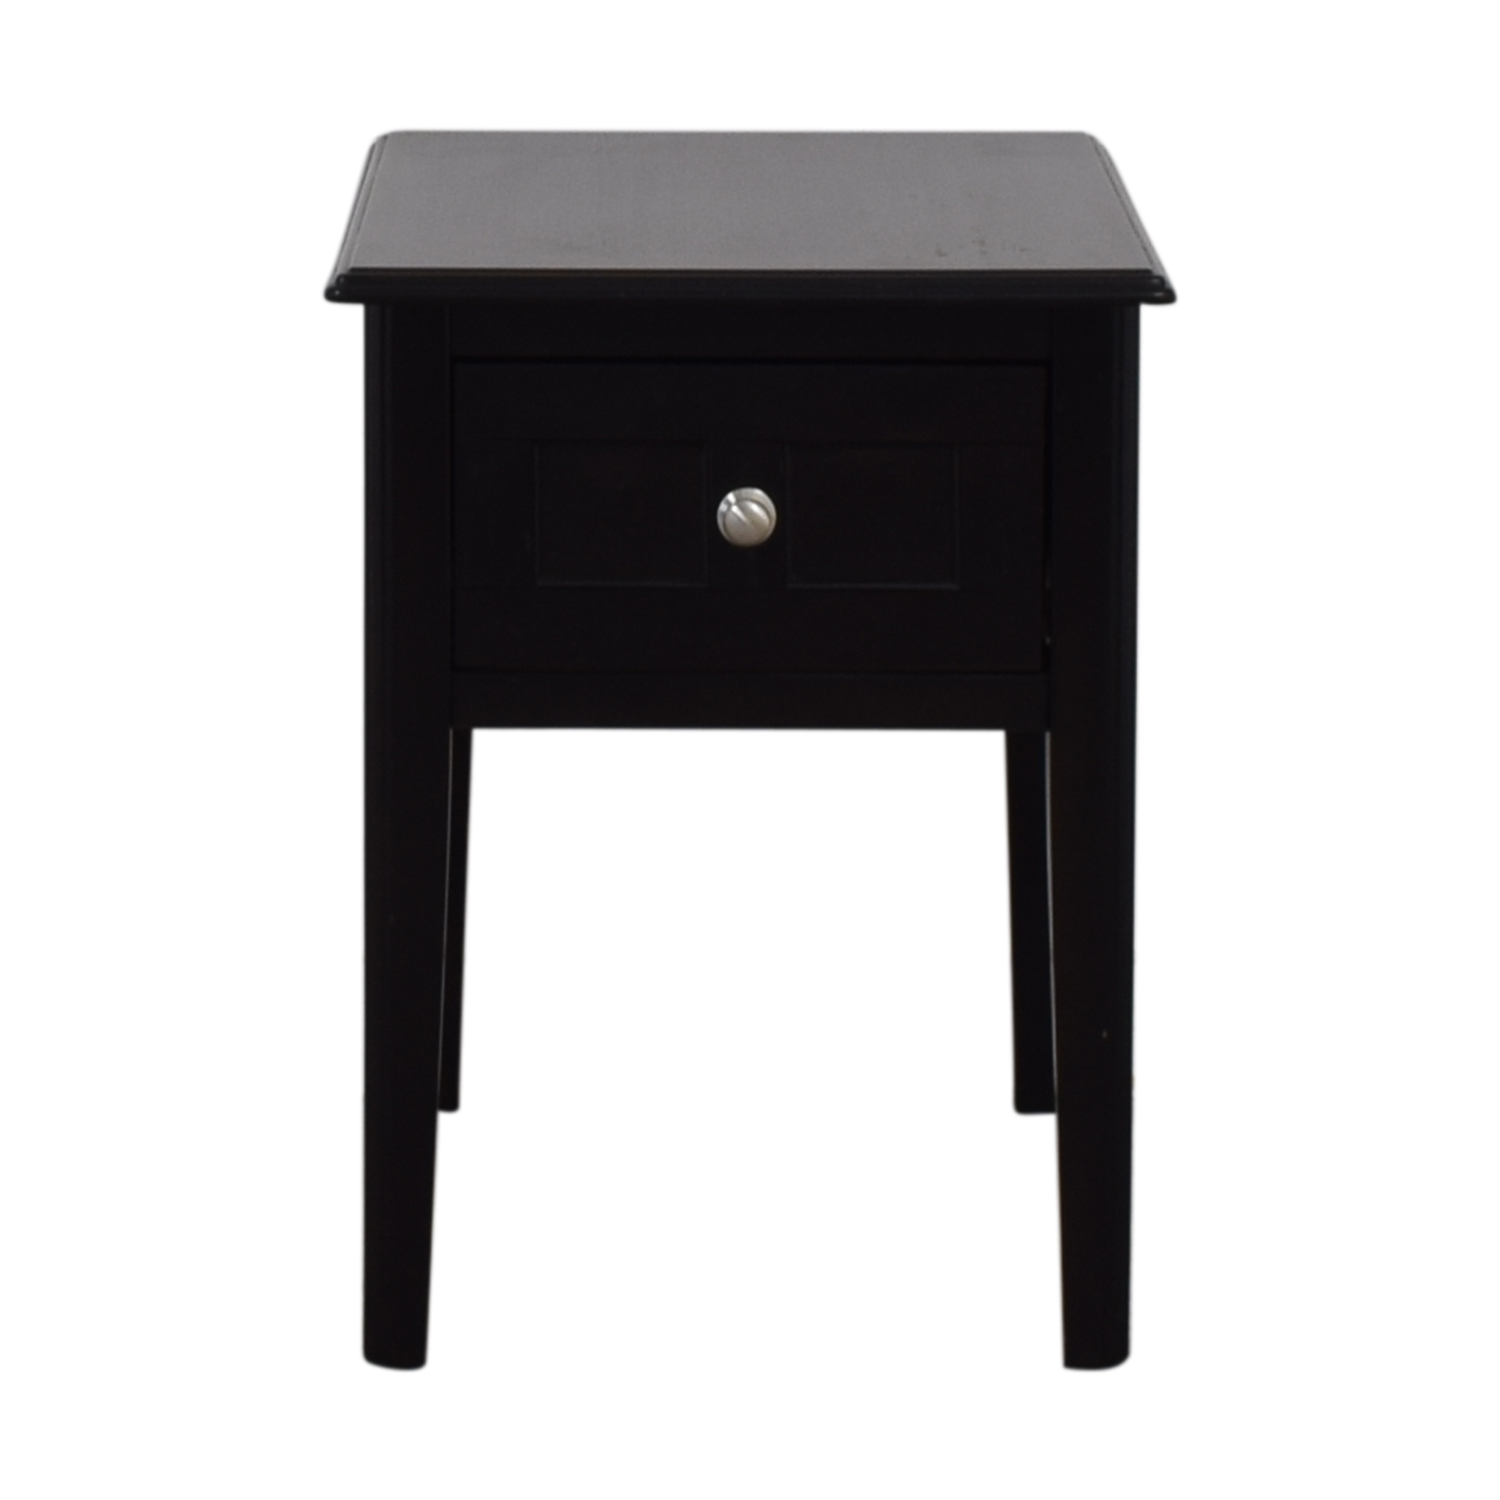 Ashley Furniture Ashley Furniture Black Single Drawer End Table black